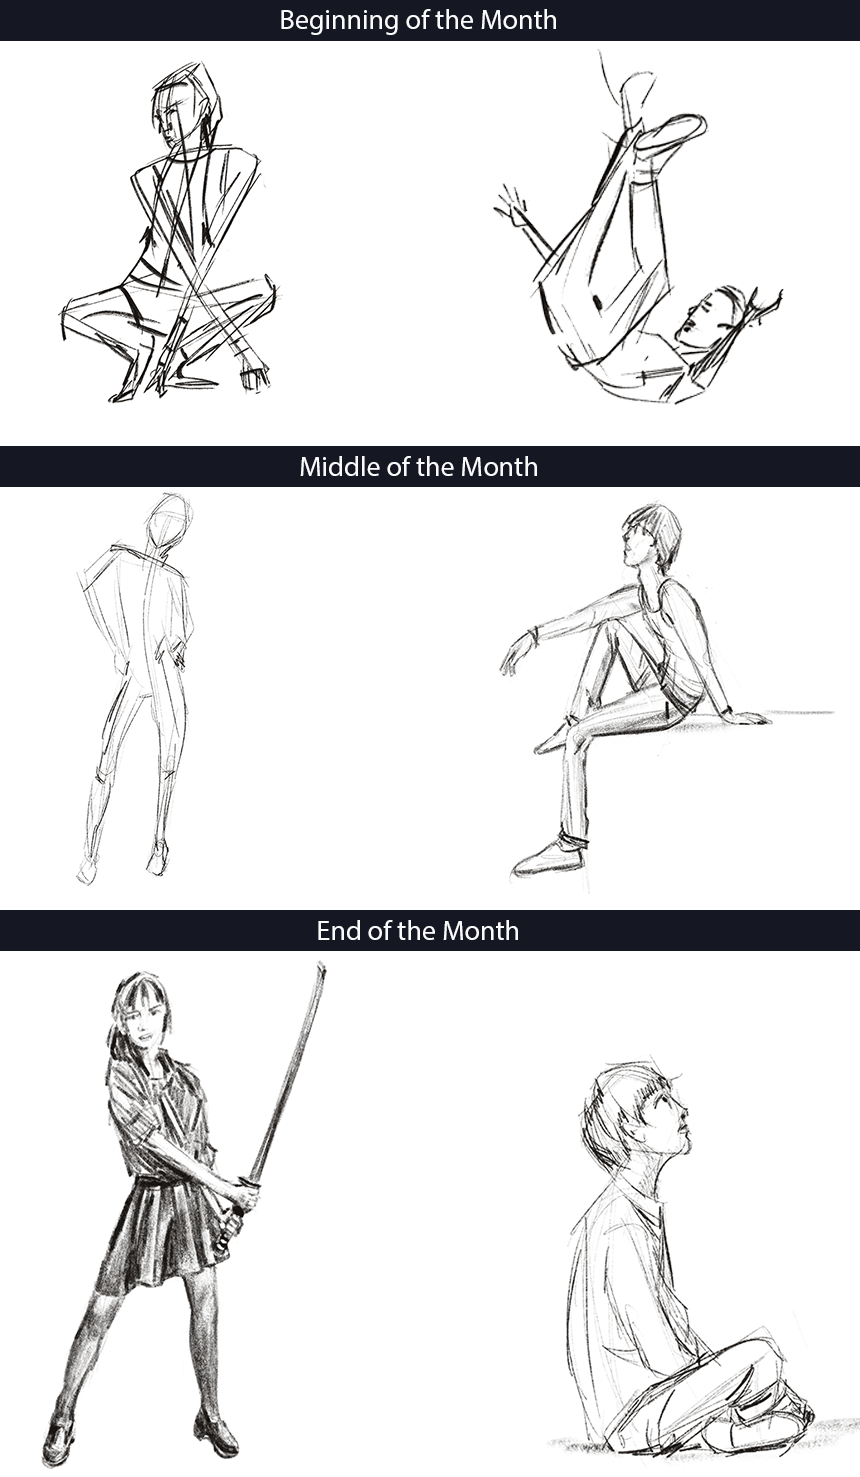 Practicing Gesture Drawing on an Ipad